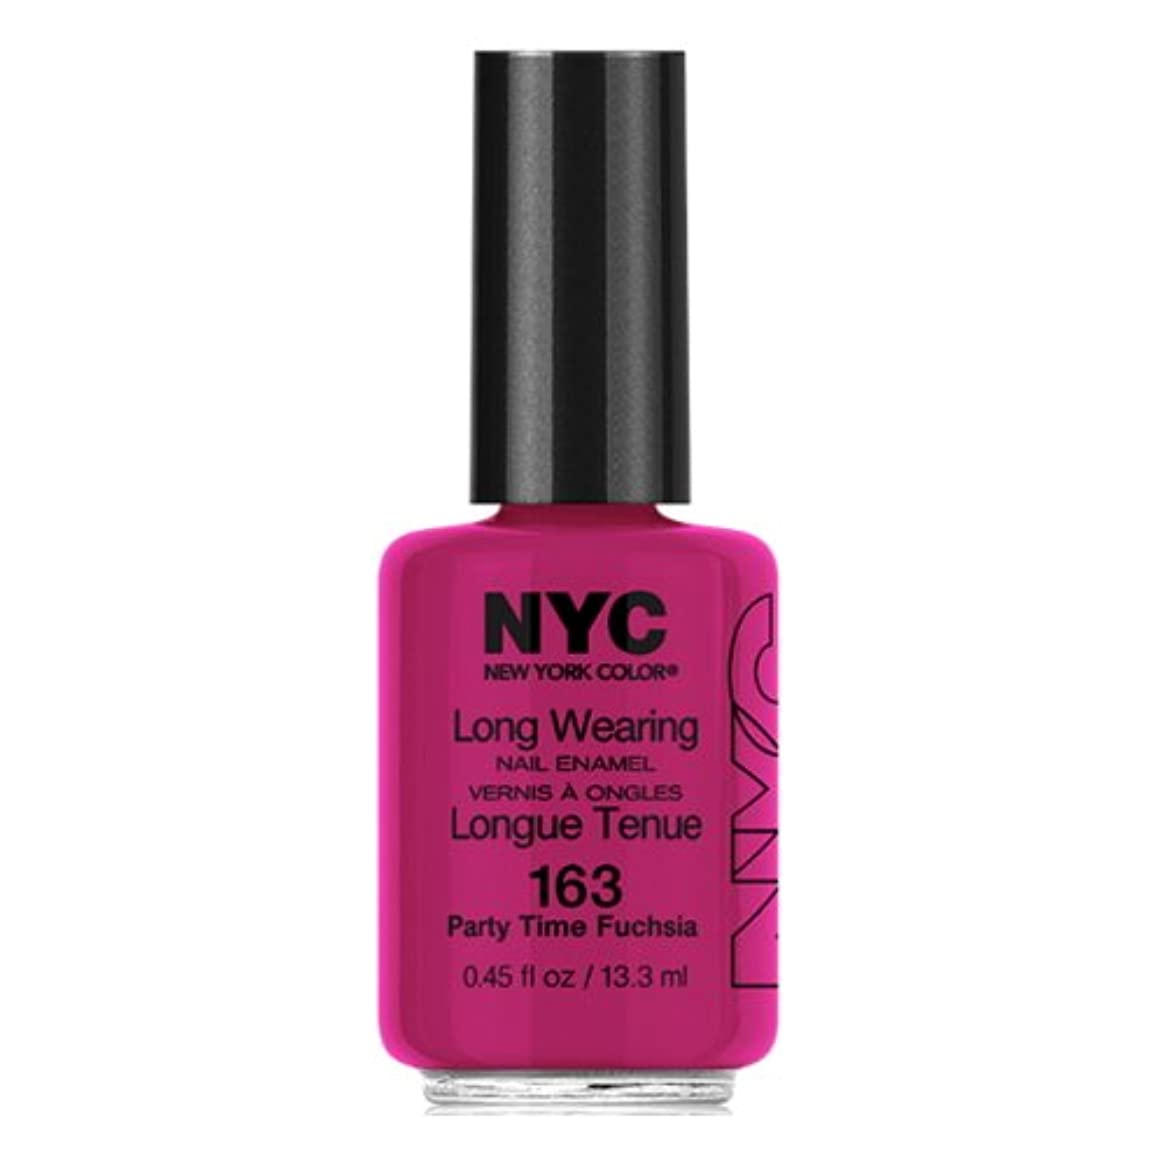 ブレンド六分儀険しい(6 Pack) NYC Long Wearing Nail Enamel - Party Time Fuschia (並行輸入品)